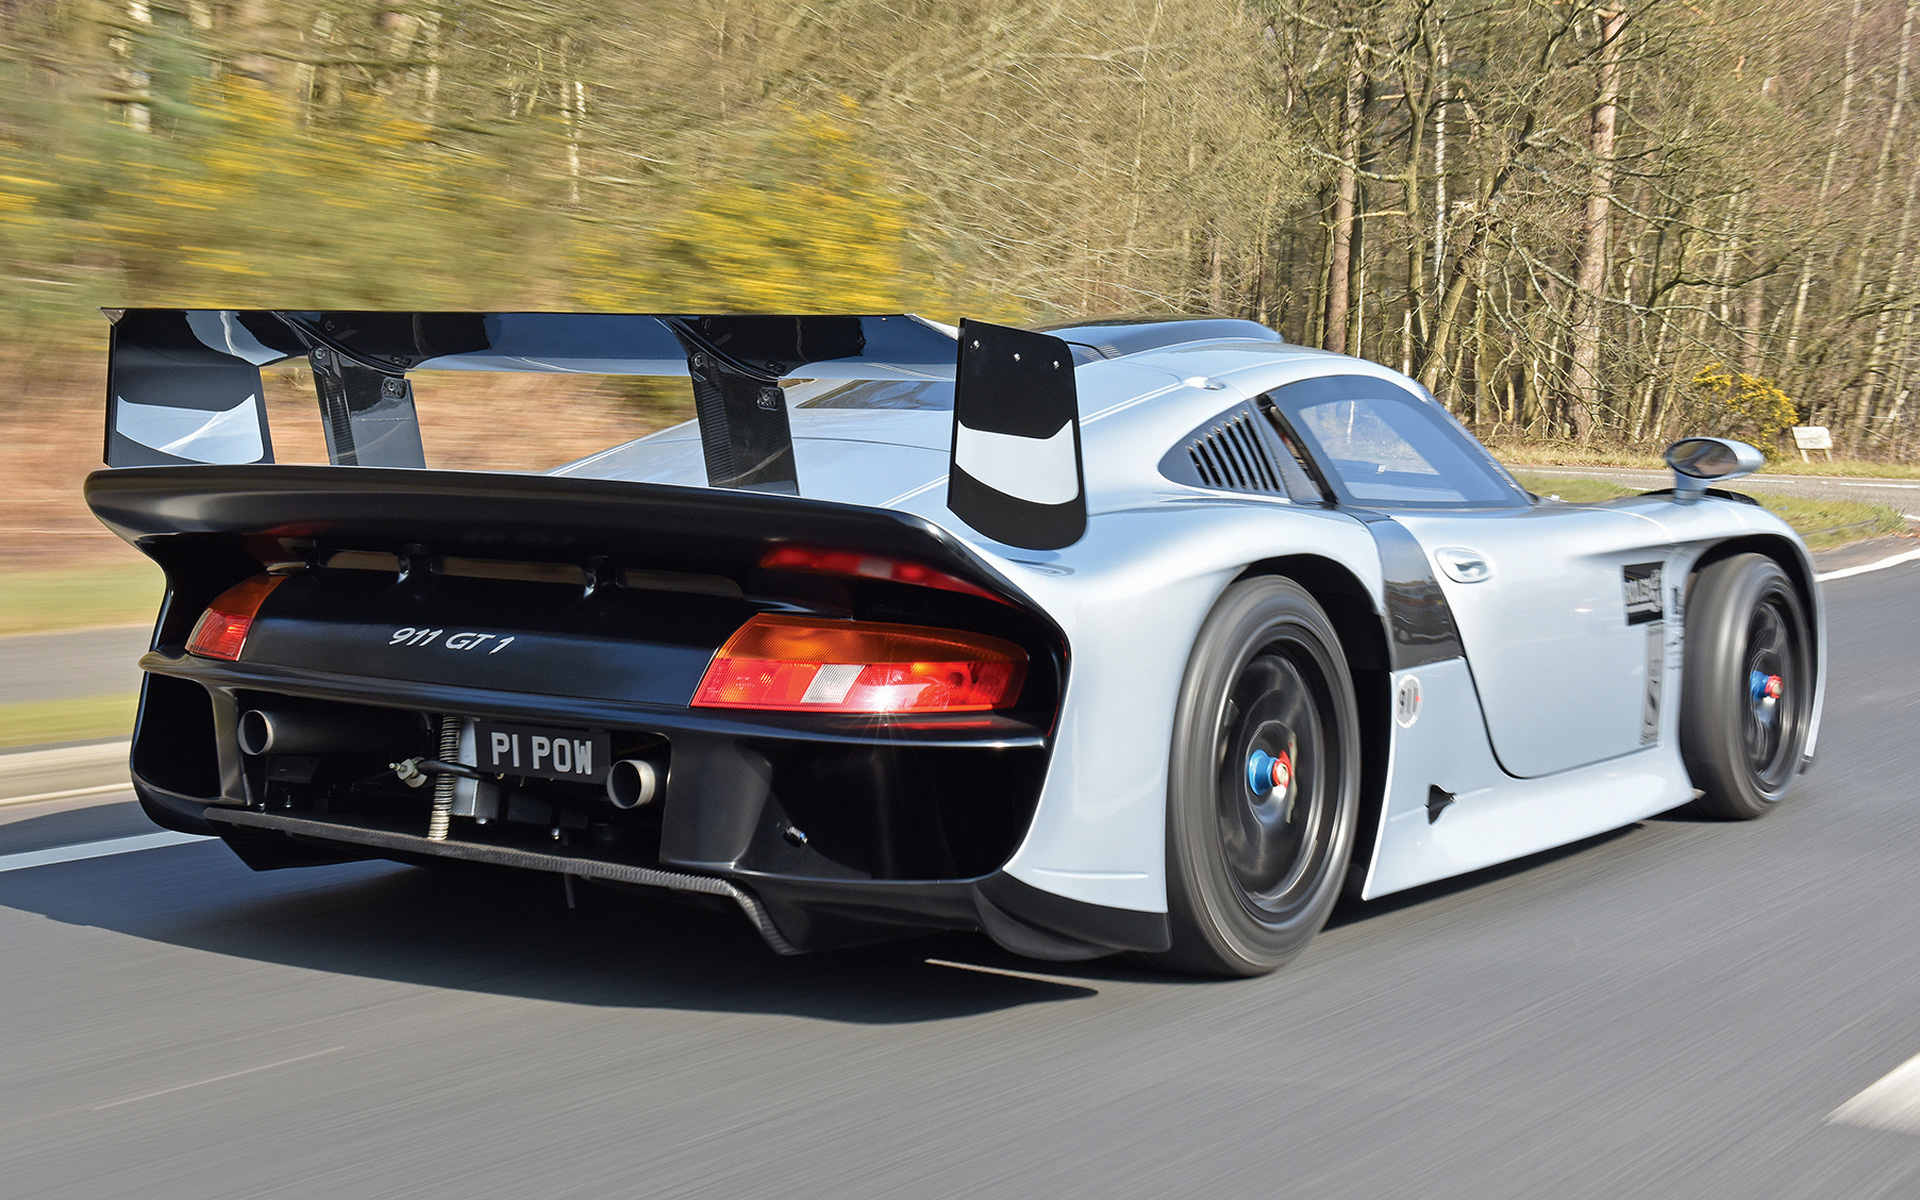 Royal Royce Car Hd Wallpaper 1997 Porsche 911 Gt1 Evolution Wallpapers And Hd Images